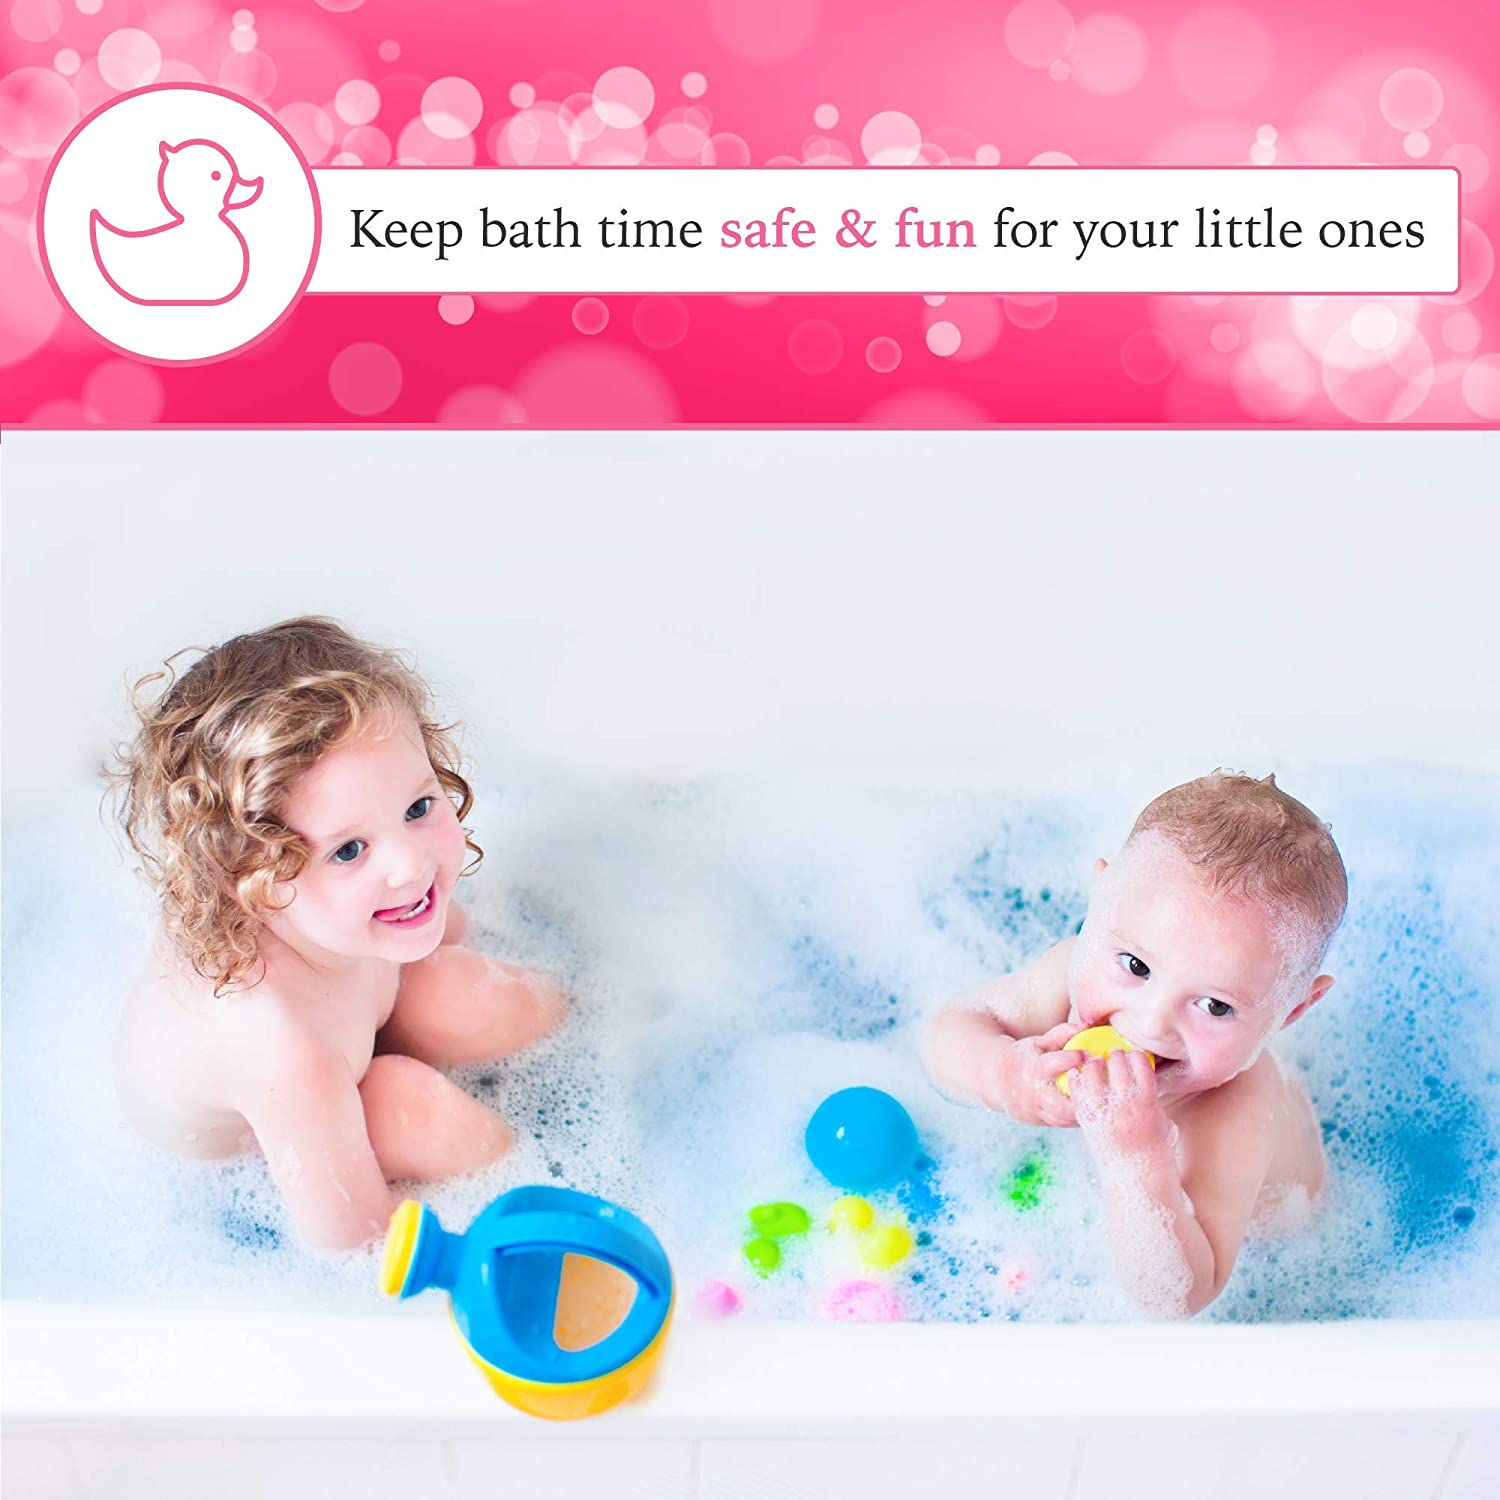 Aurelie Silicone Whale Tub Faucet Cover for Kids, Protective Baby Safety Products for the Bathtub Spout, Pink